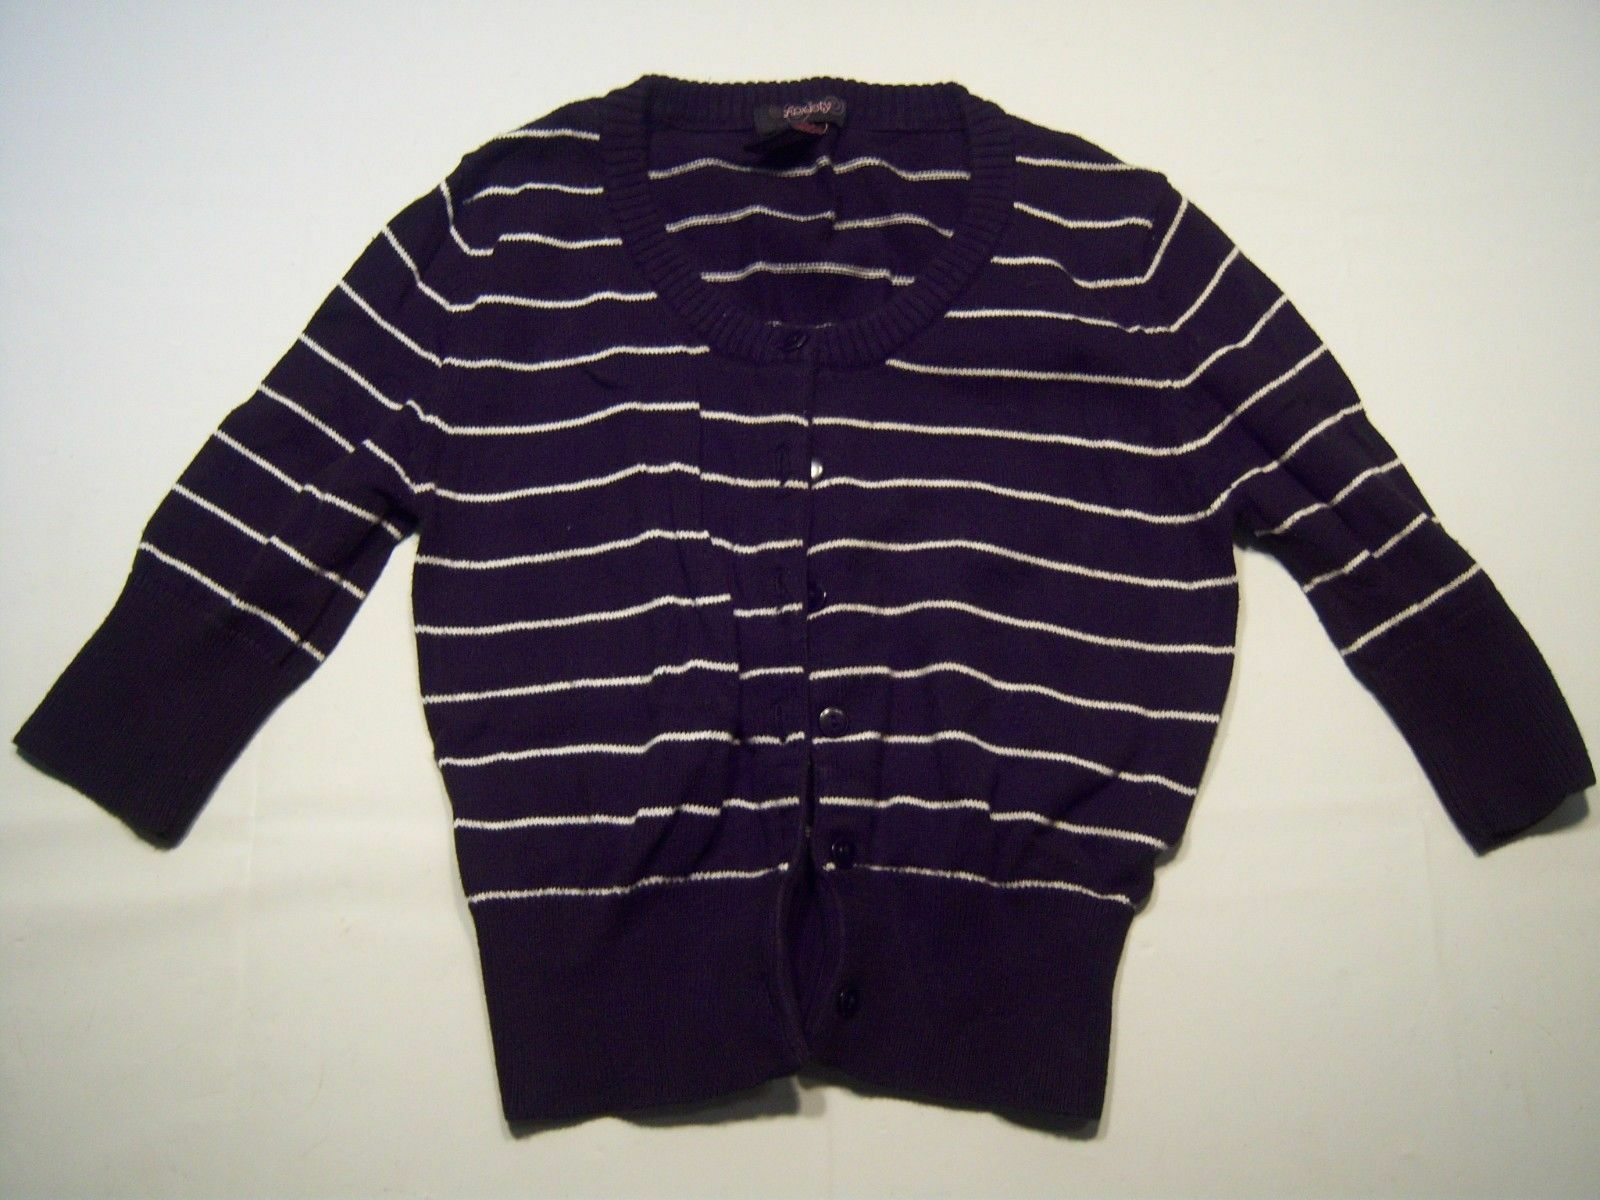 Anxiety Casual Striped Button Down Cardigan Sweater Women's Size S